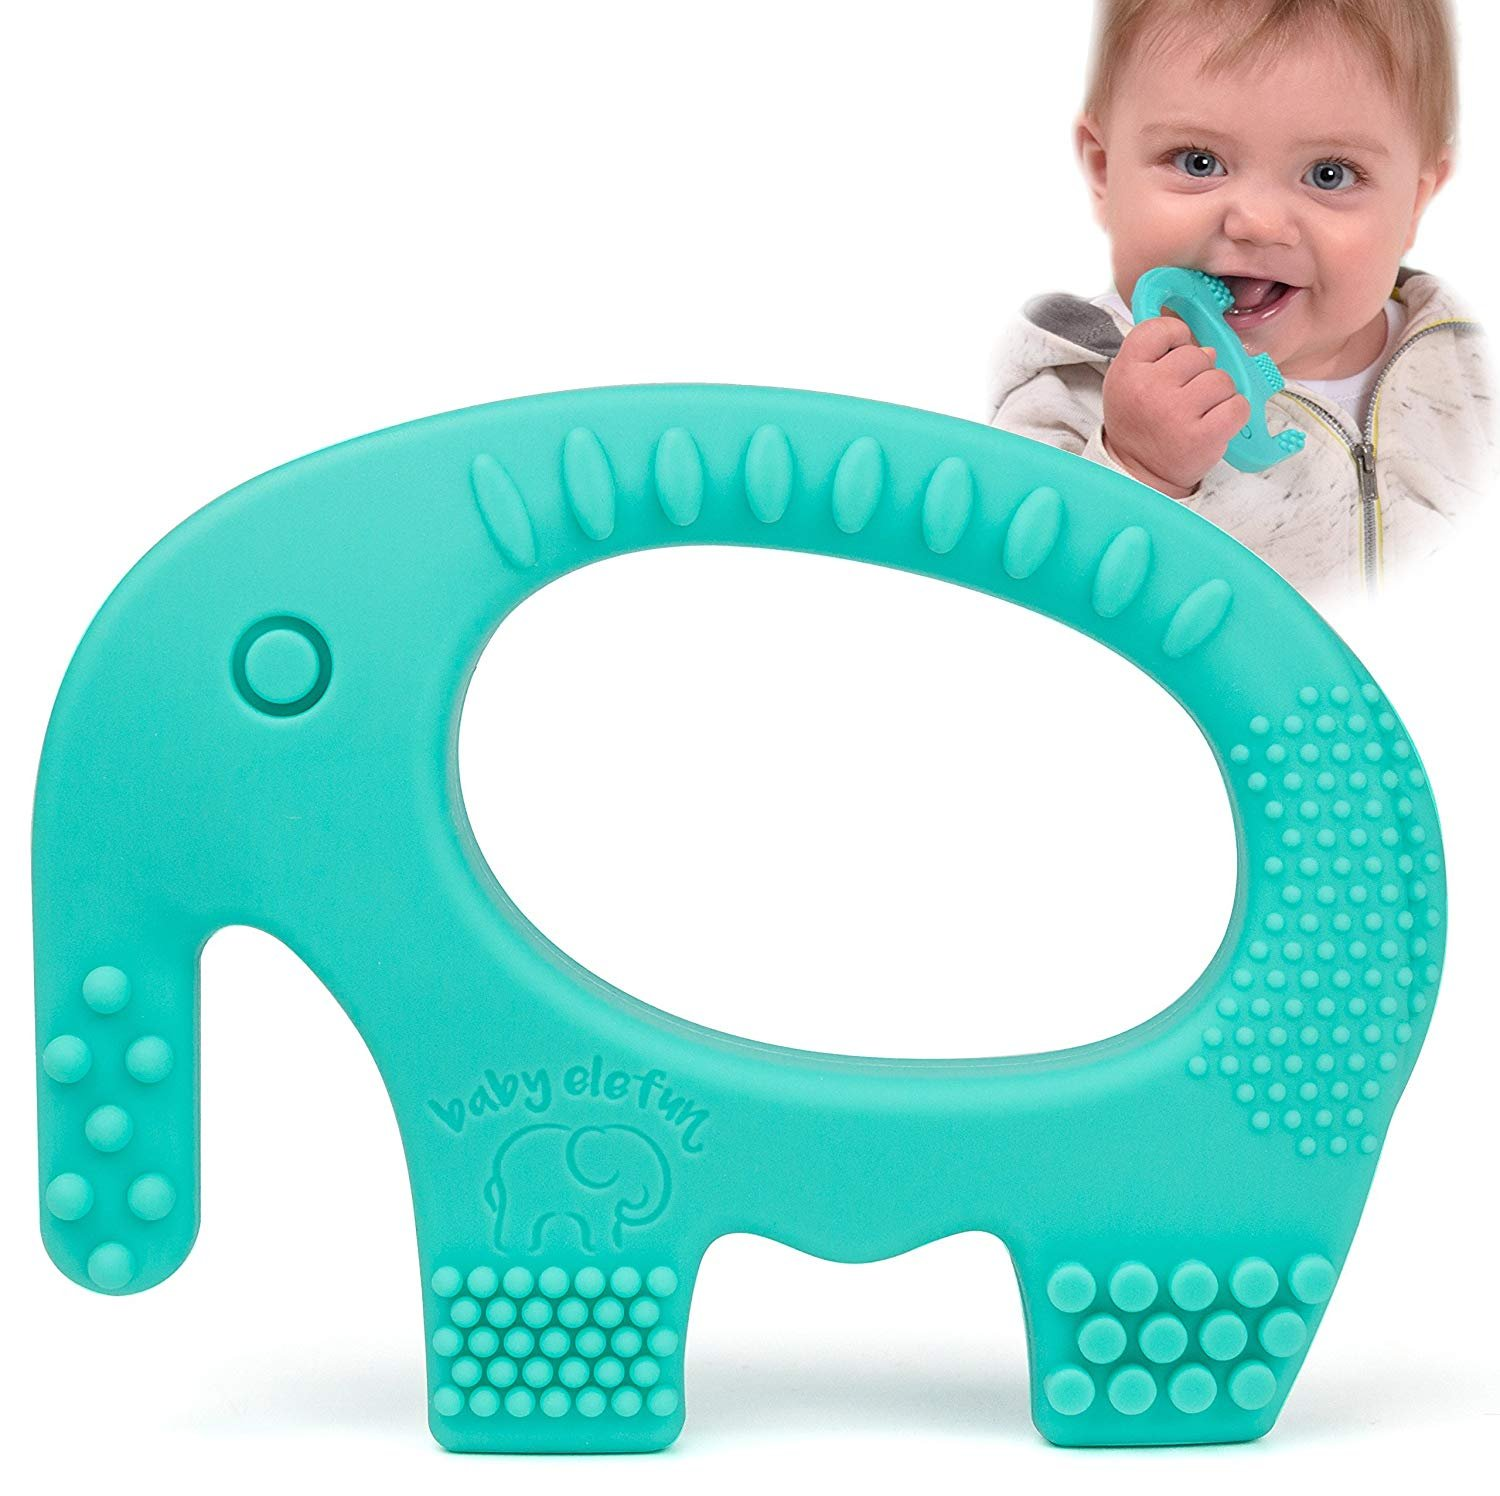 Baby Teething Toys - Adorable Turquoise Silicone Elephant Teether BPA Free - Best for Girl Or Boy Infant Newborn 3 6 12 Months / 1 Year Old Cool Sensory Learning Baby Shower and Easter Gifts Baby Elefun Eleph01